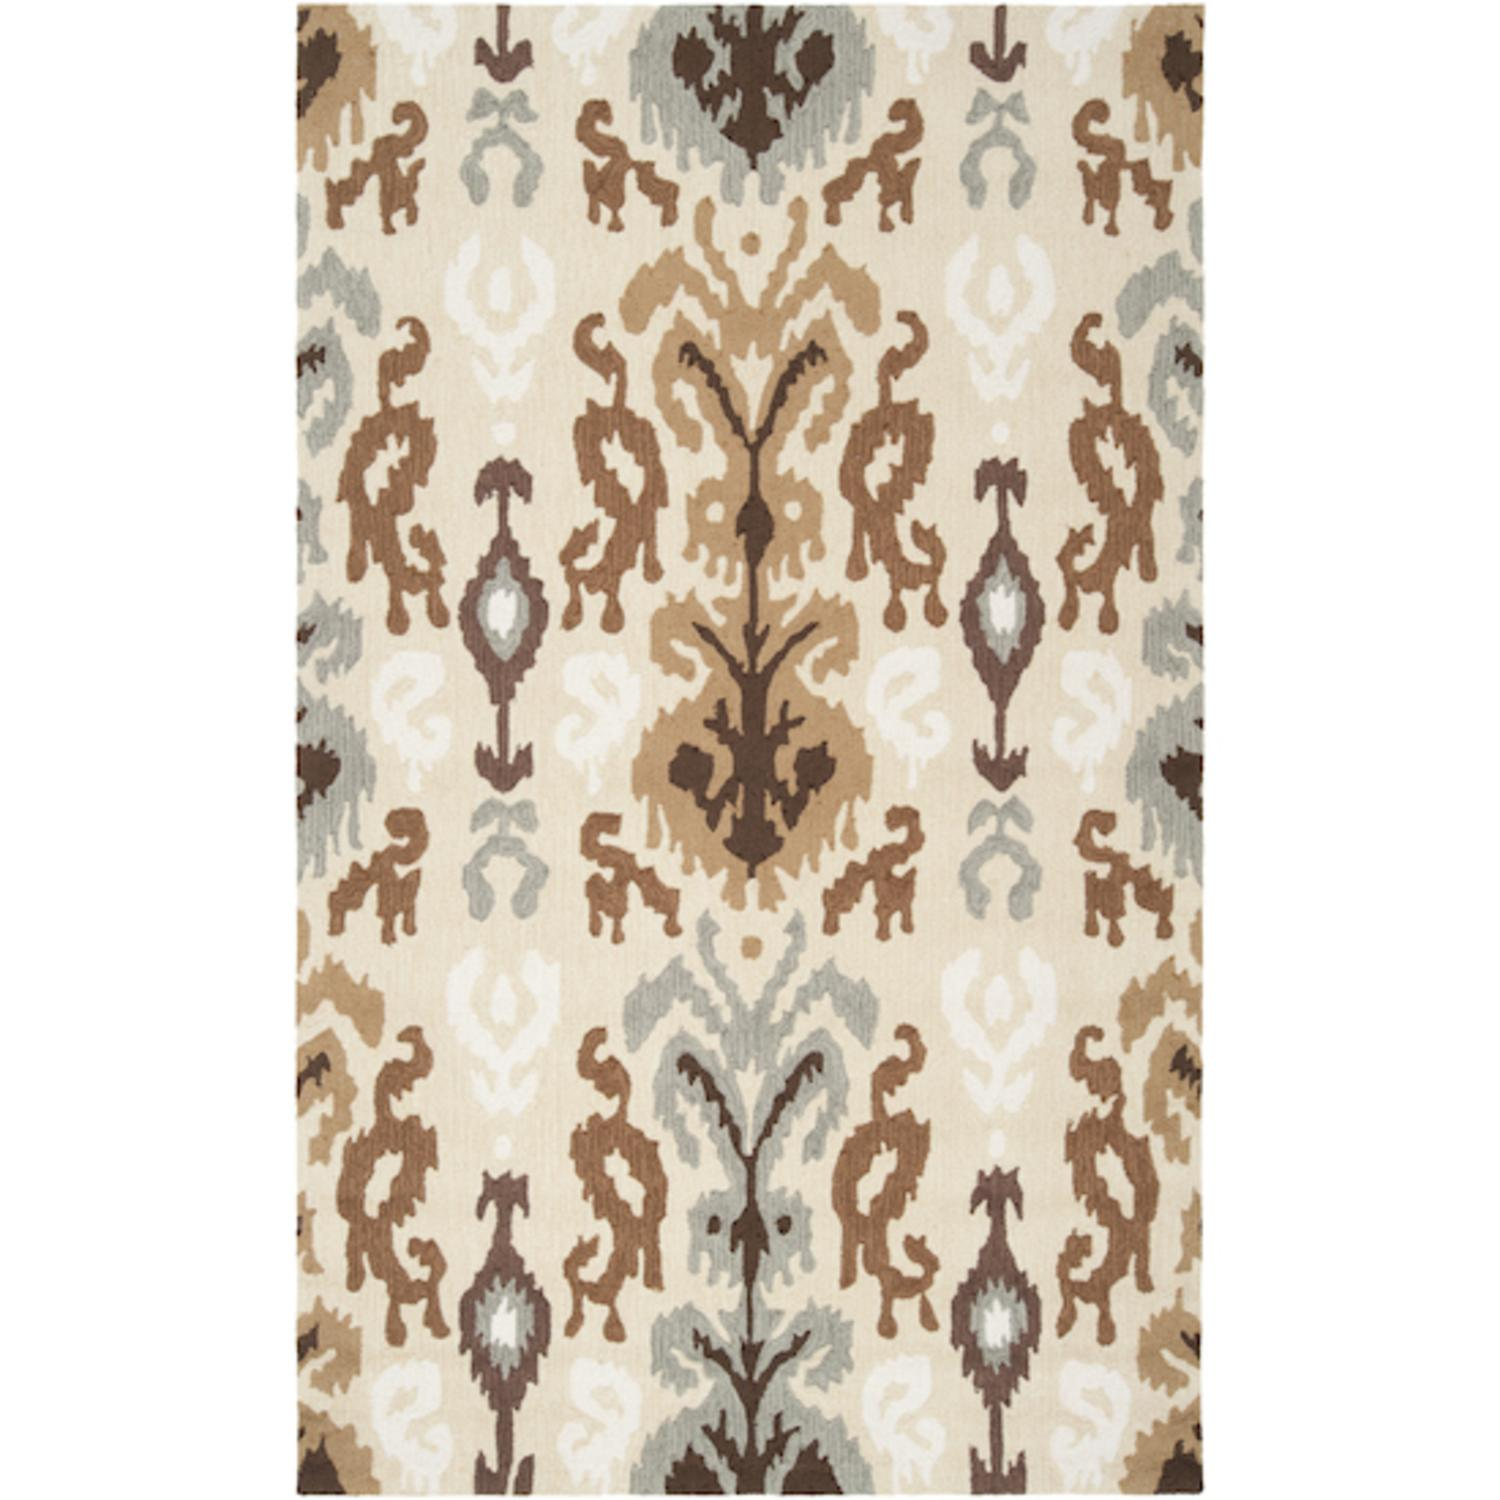 8' x 10' Calcutta Light Green and Dark Taupe Hand Hooked Area Throw Rug